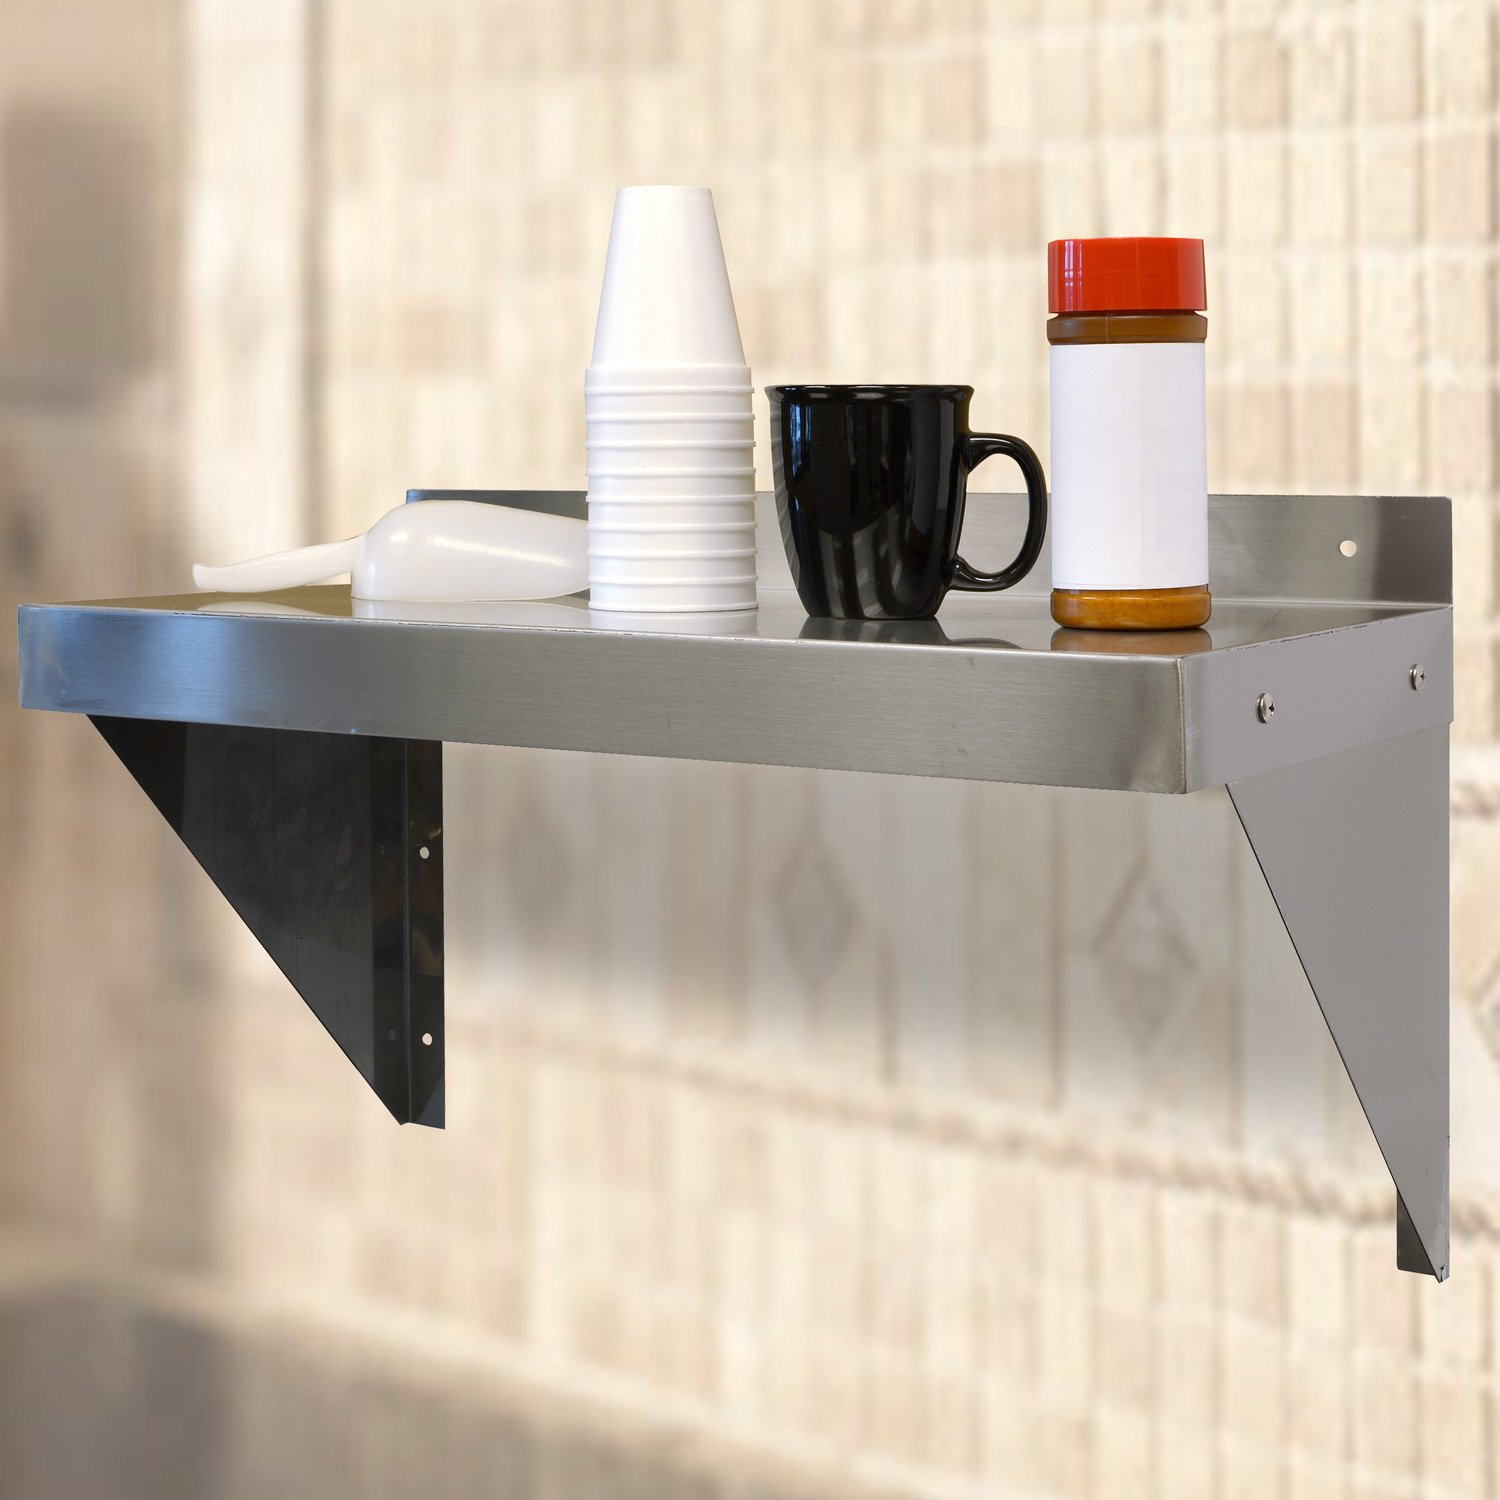 Offex 24'' Brushed Stainless Steel Finish Work Shelf - Silver by offex (Image #2)